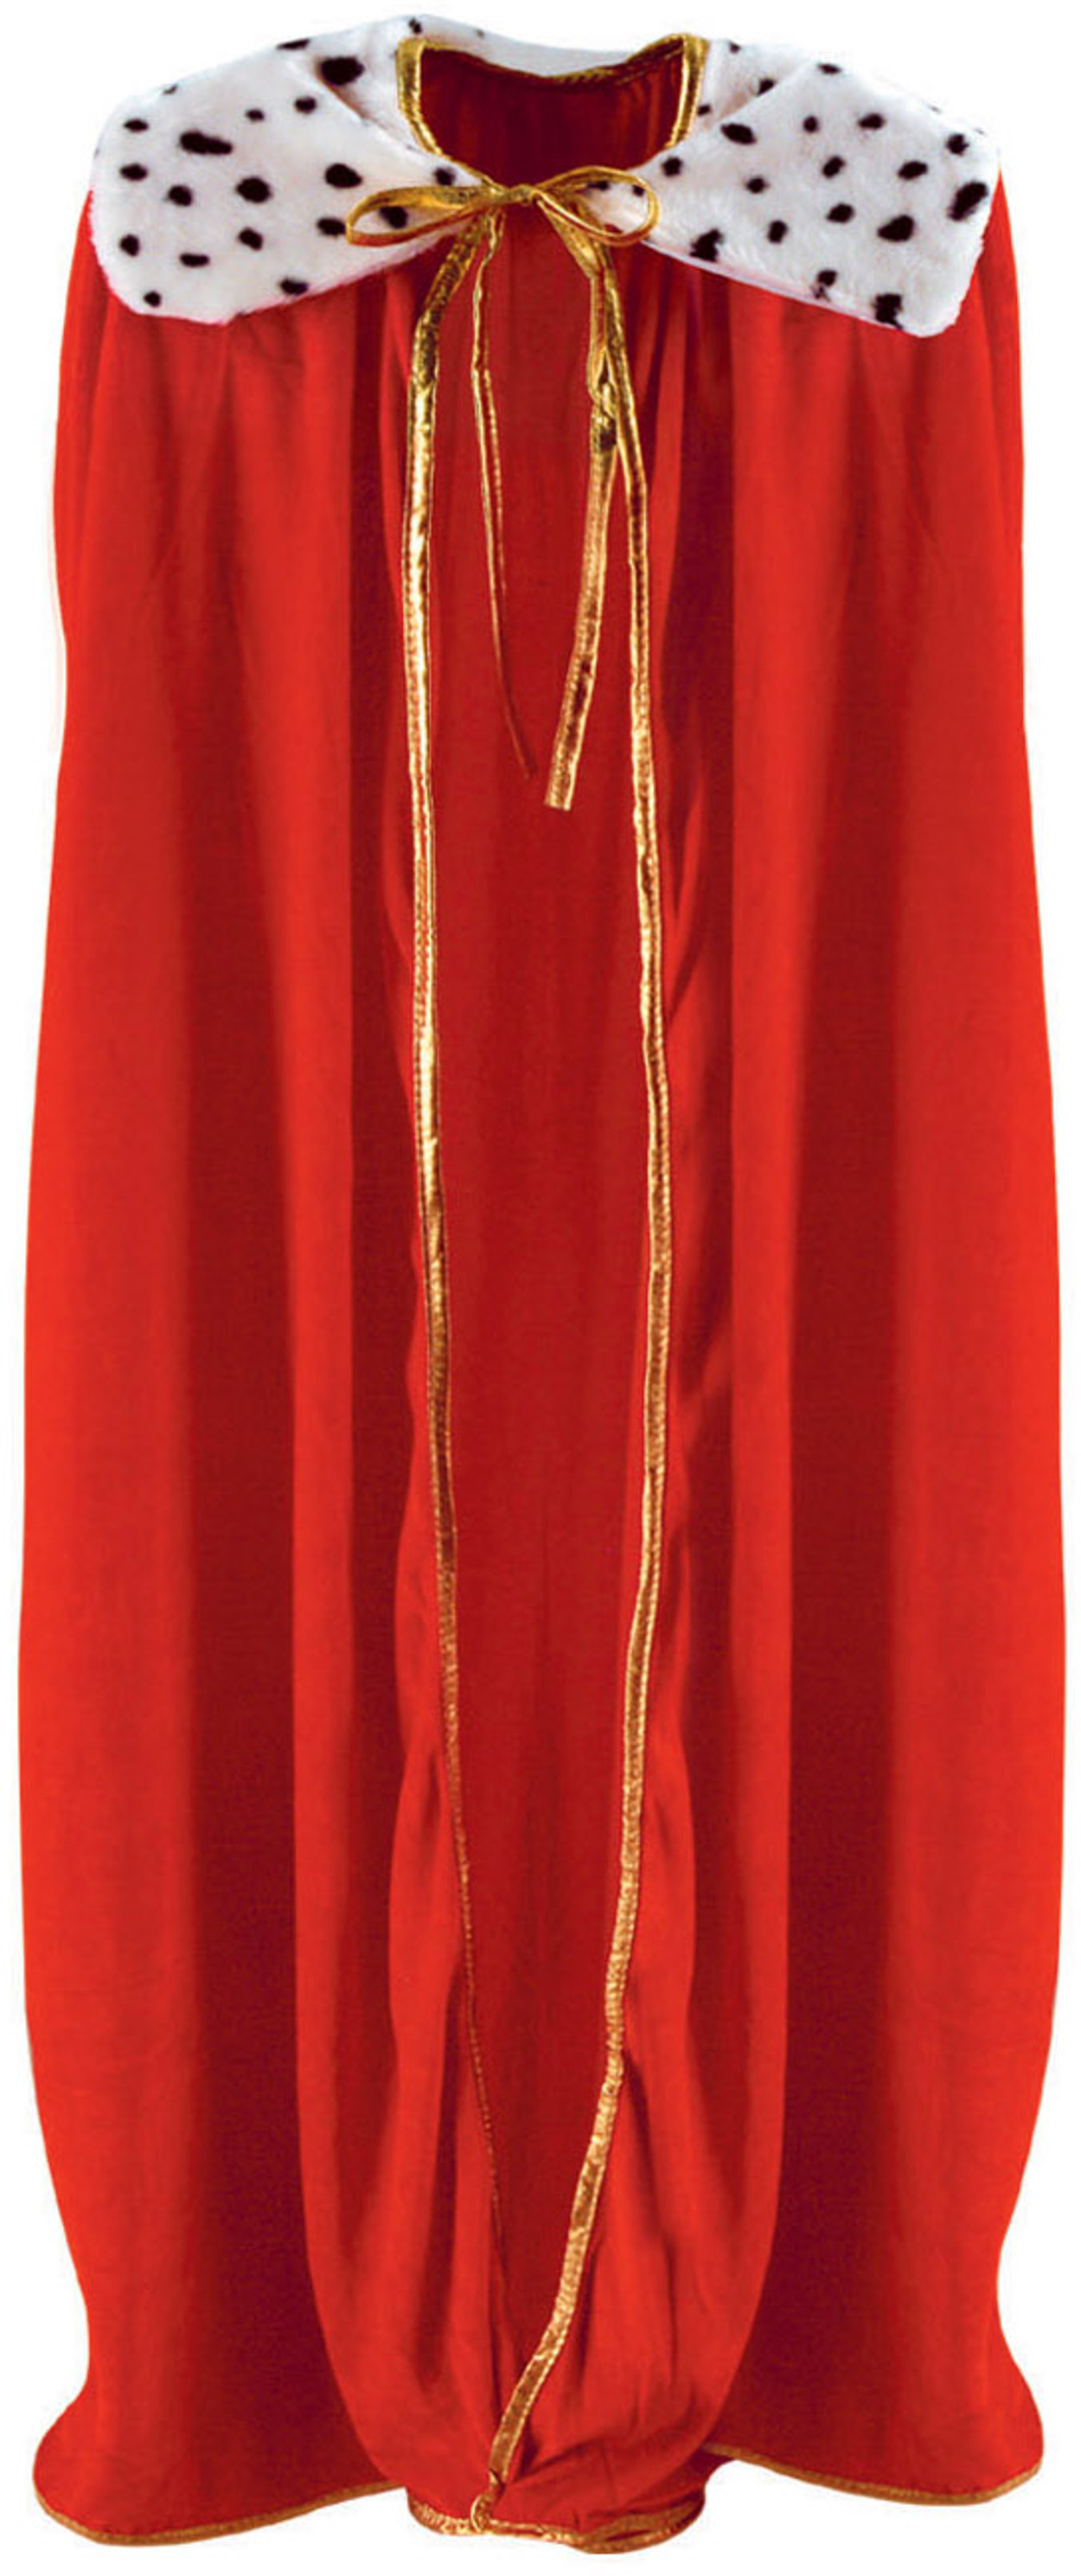 Adults Medieval Royal Red King Robe And Crown Set Costume Accessory